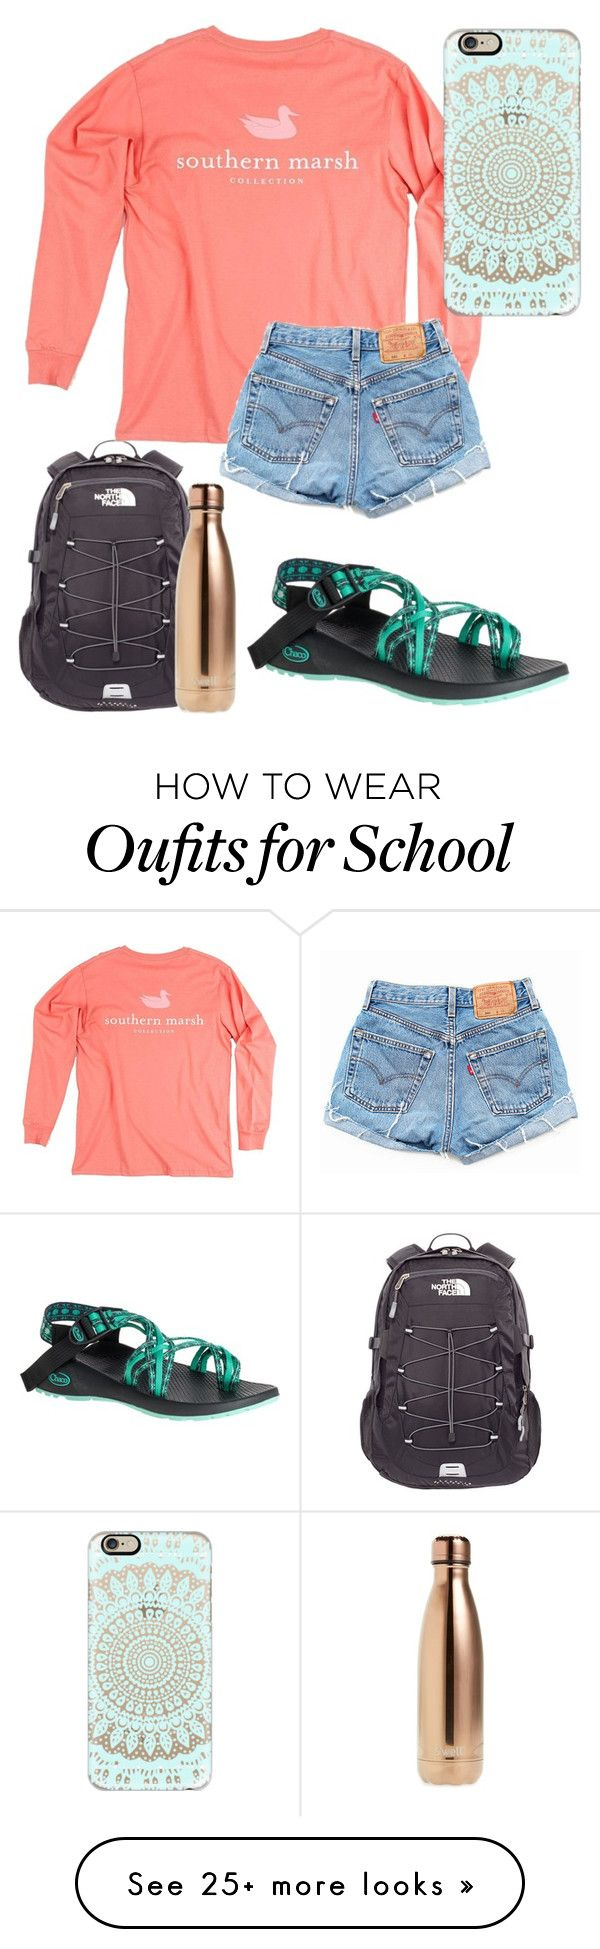 """School outfit"" by jadenriley21 on Polyvore featuring Chaco, The North Face, Levi's, S'well and Casetify"